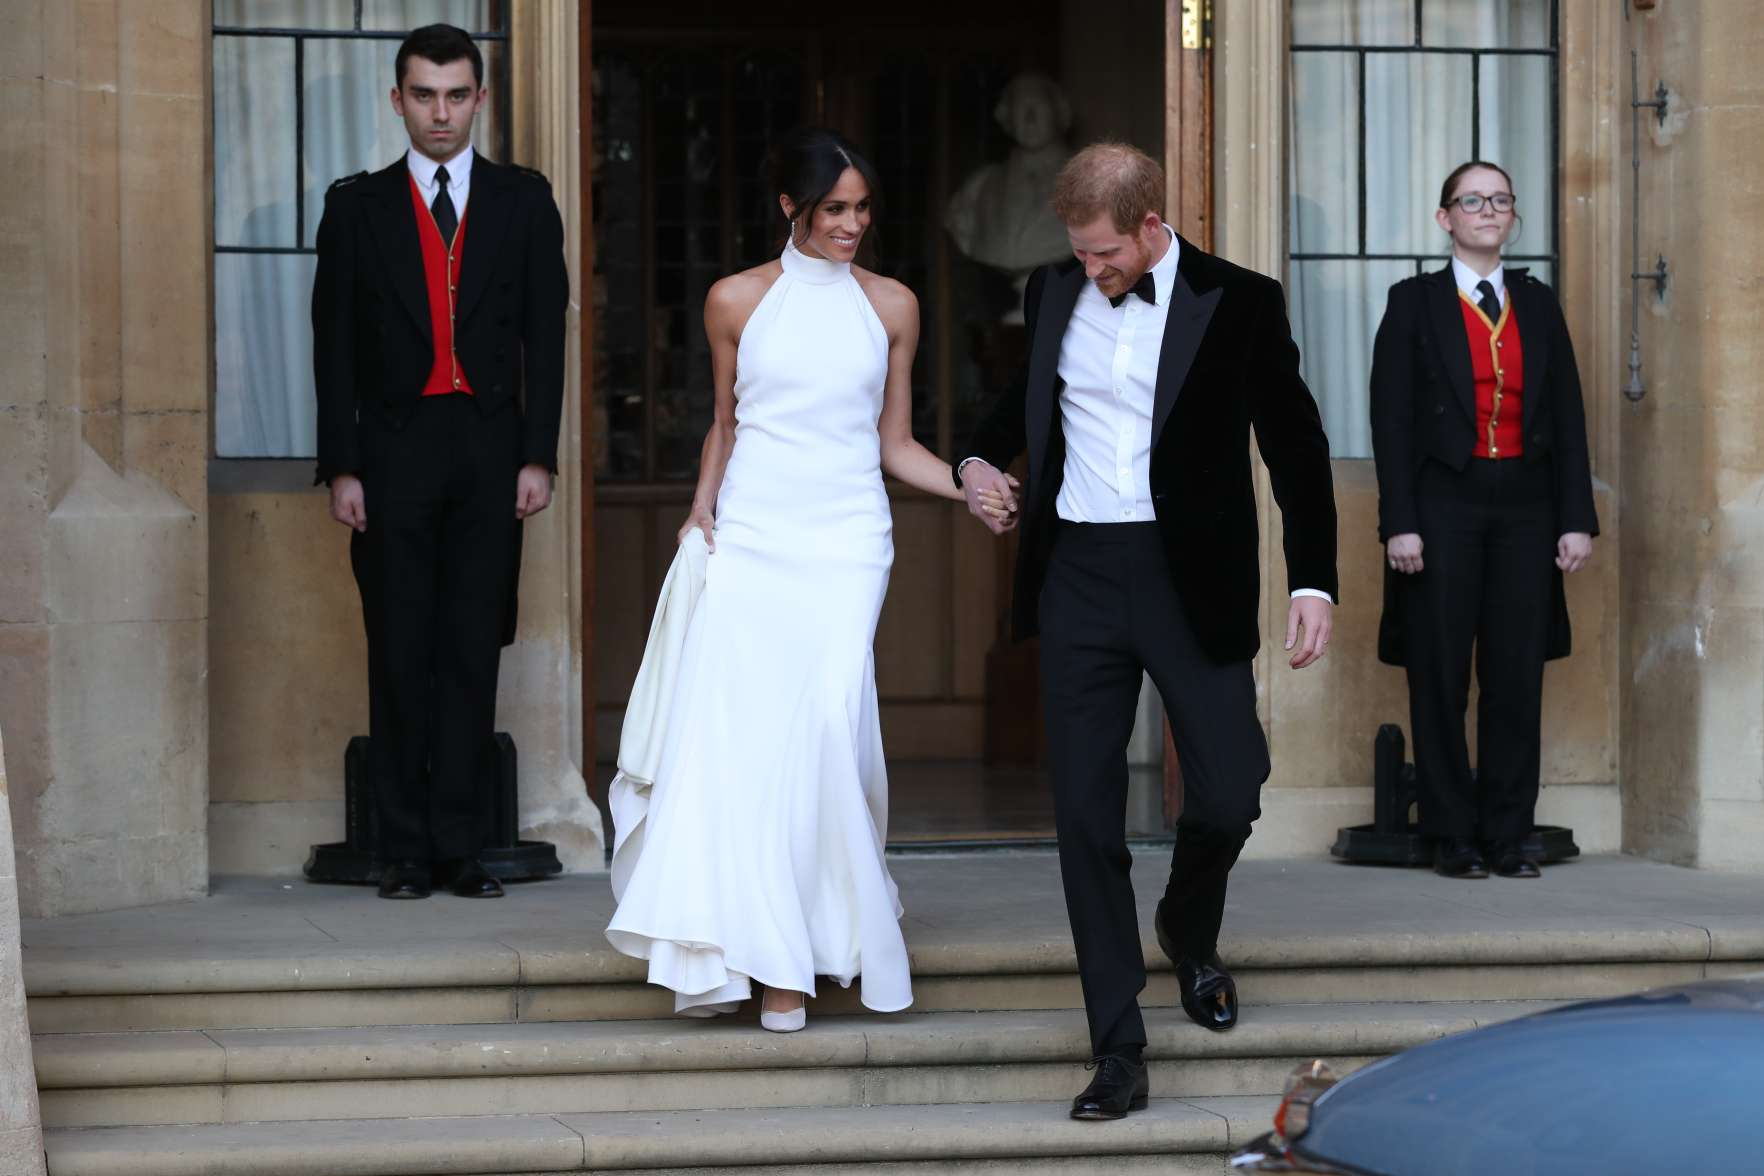 Duchess of Sussex and Prince Harry, Duke of Sussex leave Windsor Castle after their wedding to attend an evening reception at Frogmore House, hosted by the Prince of Wales on May 19, 2018 in Windsor, England.